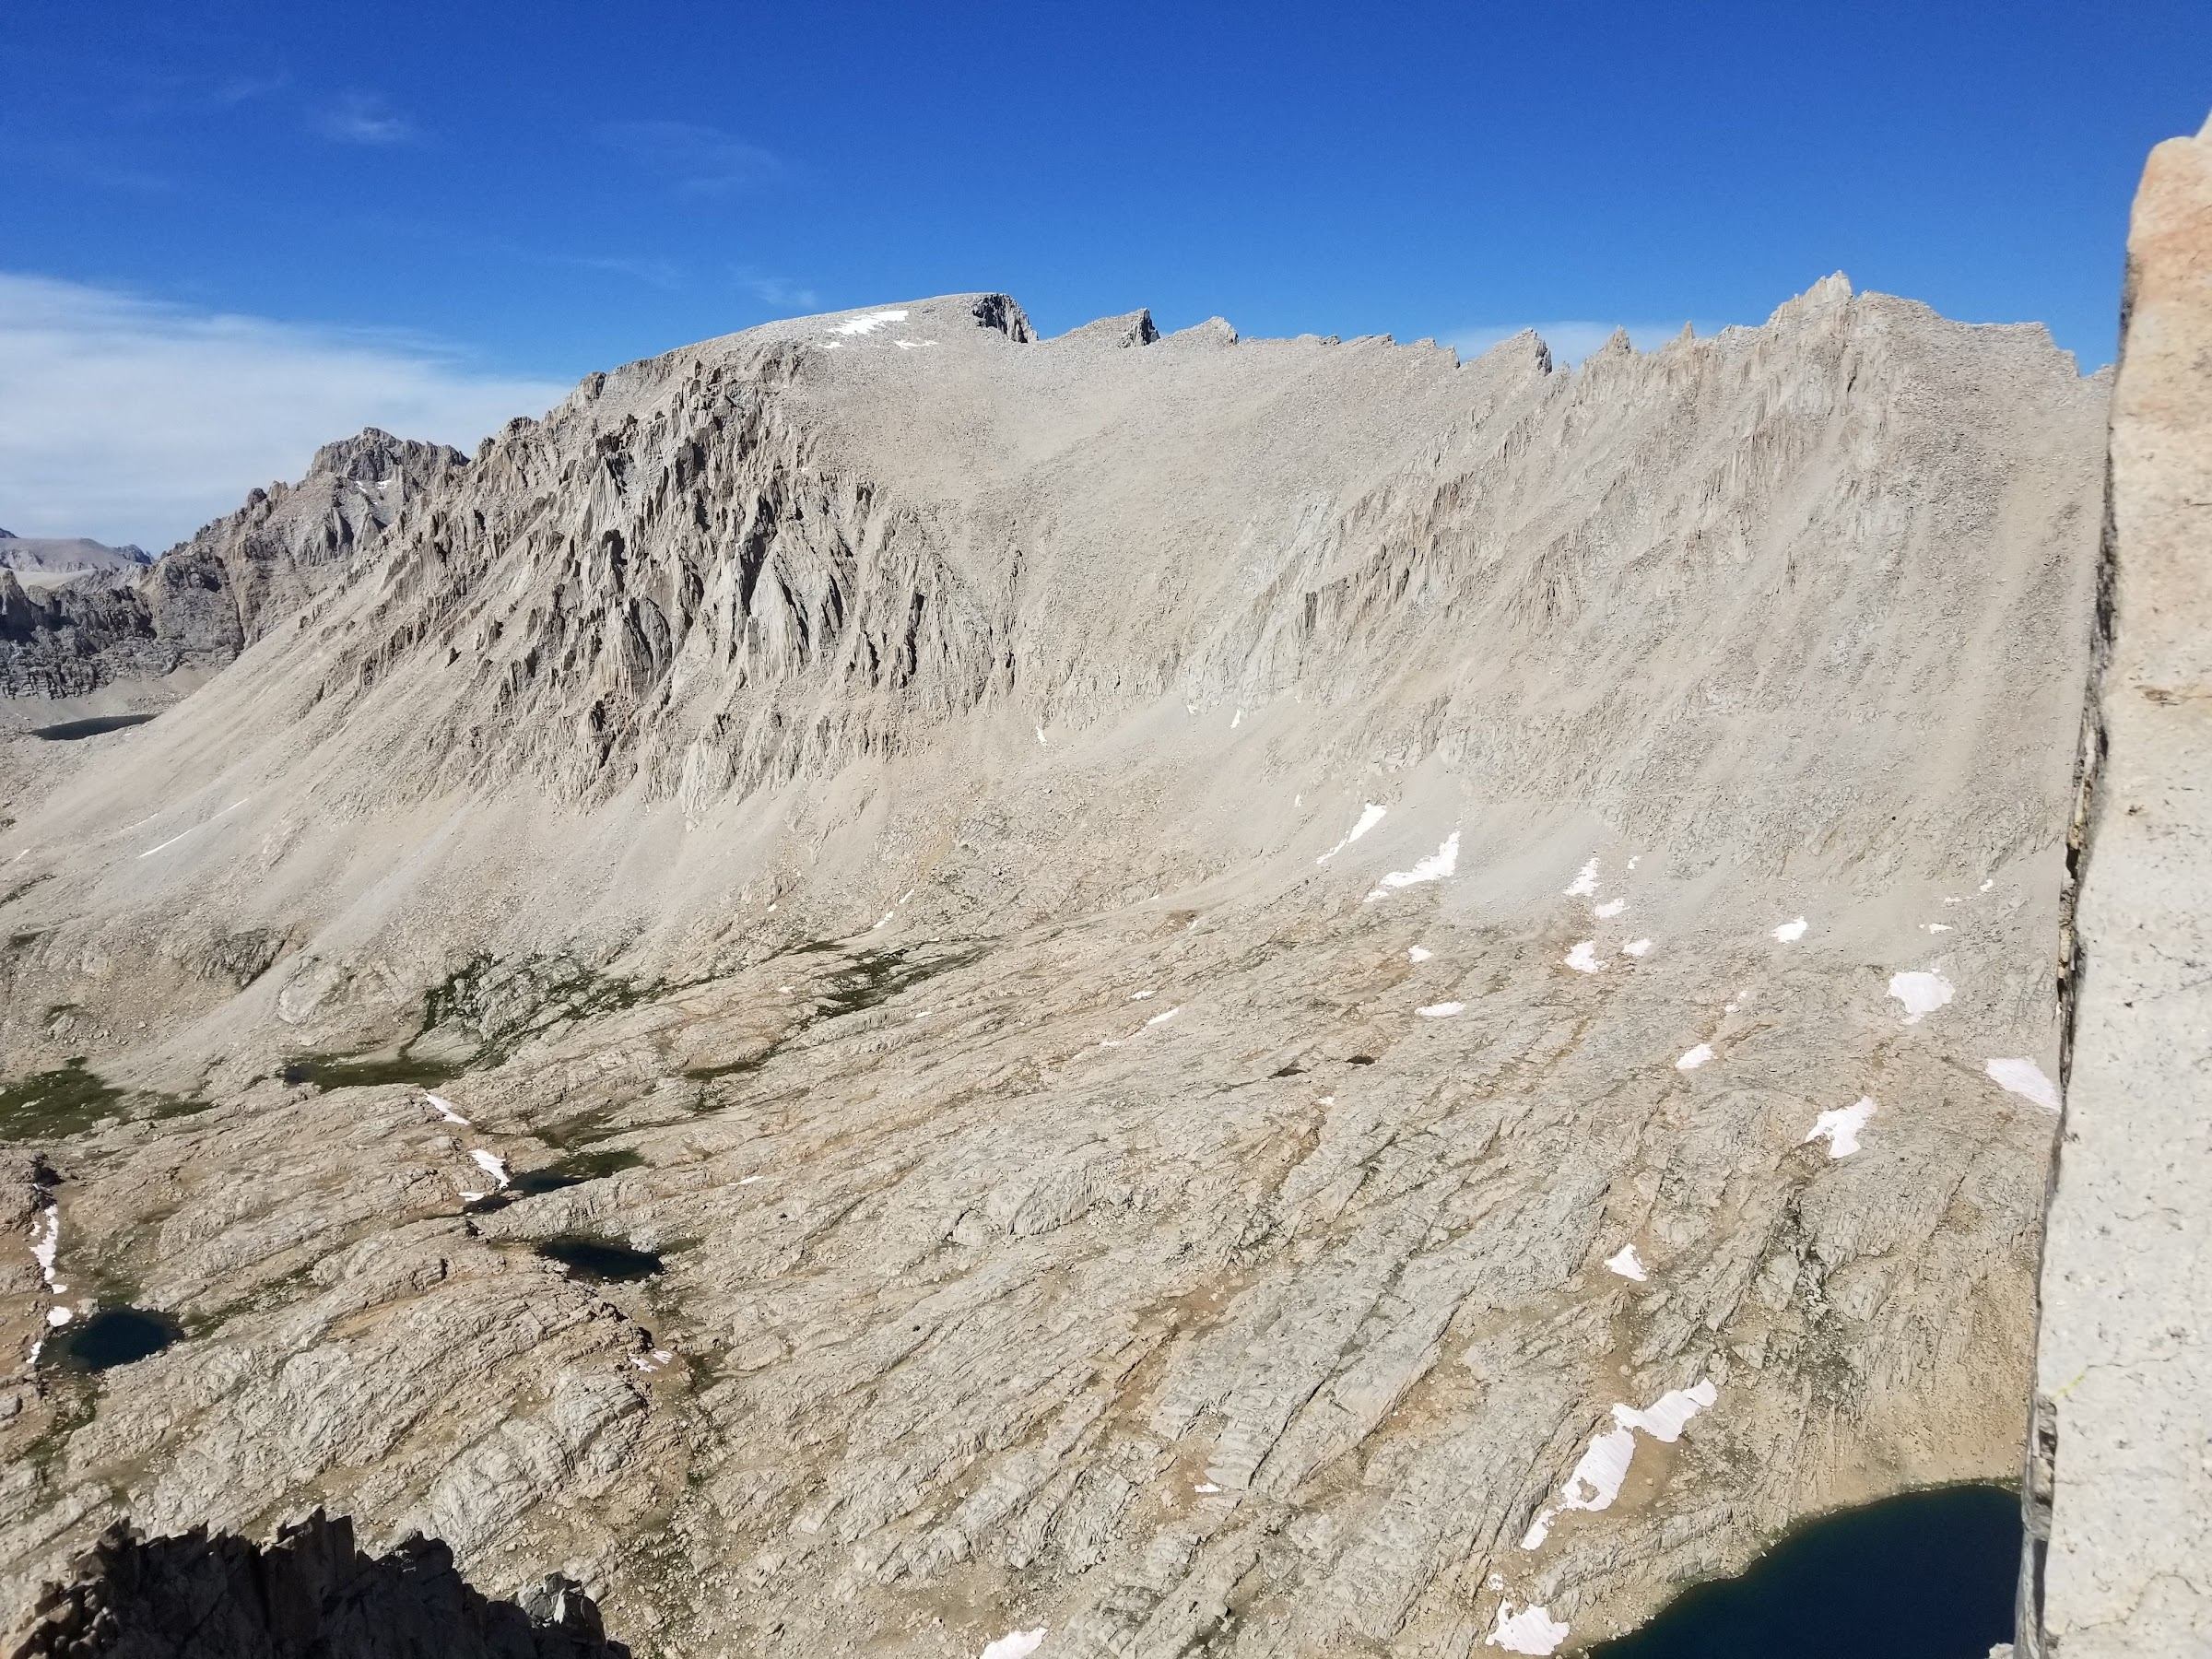 Mount Whitney from the summit of Mount Hitchcock